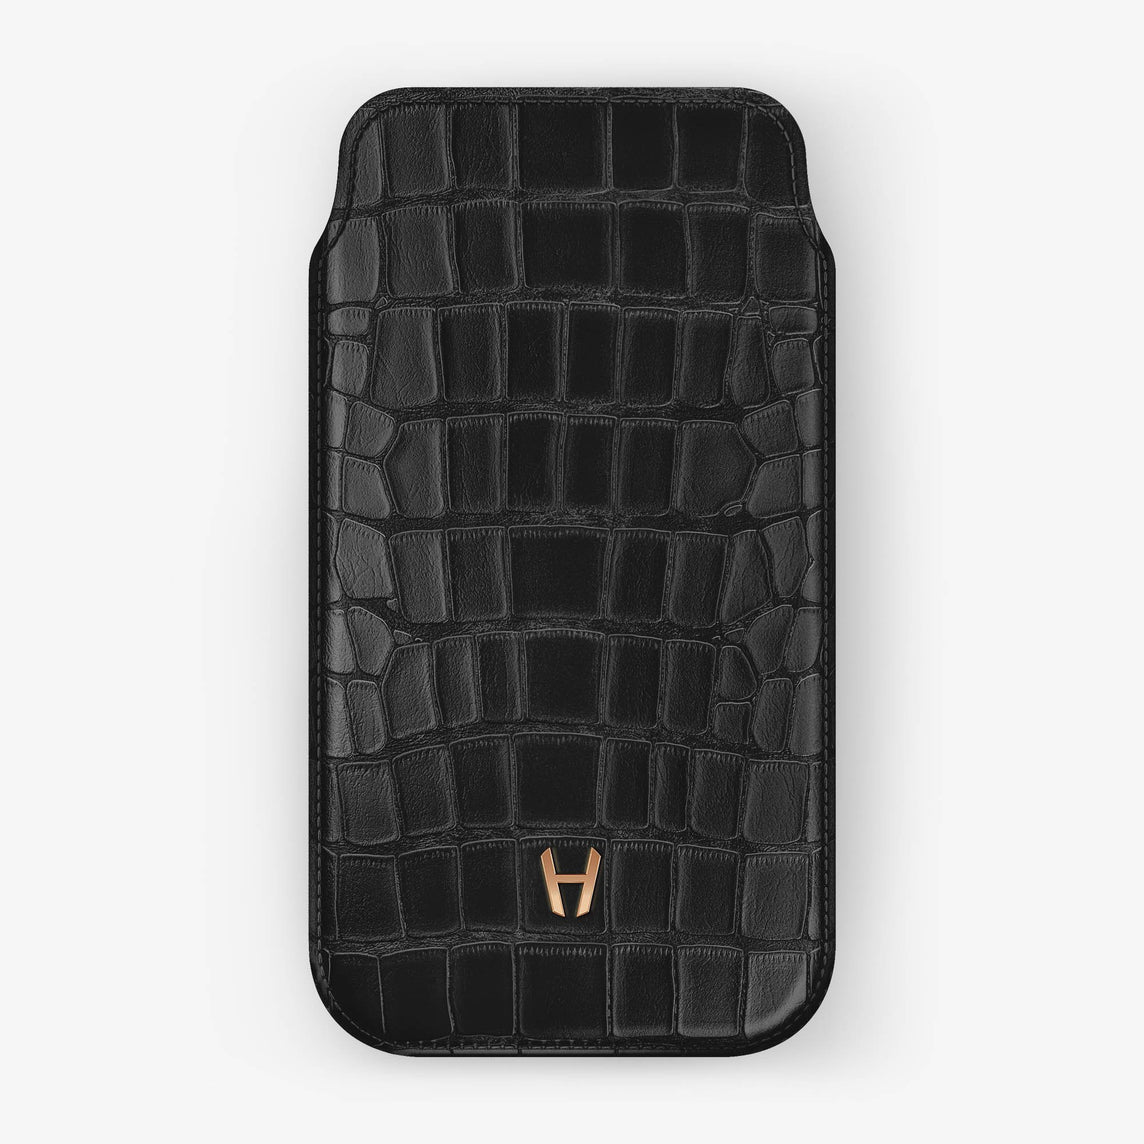 Alligator [iPhone Sleeve Case] [model:iphone-xr-case] [colour:black] [finishing:rose-gold]